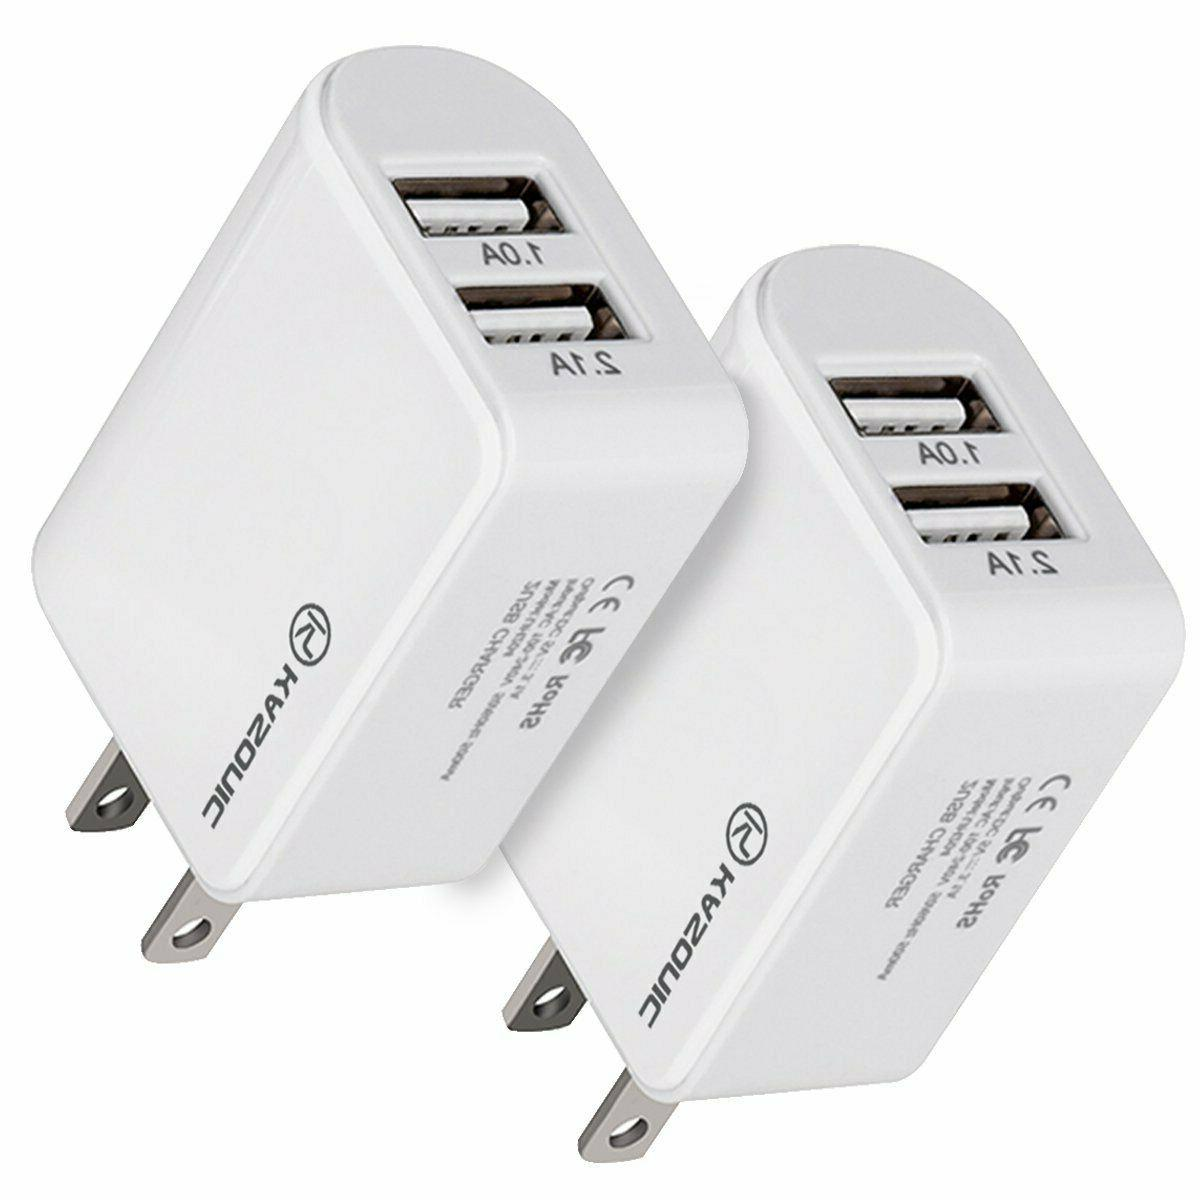 usb fast charger 2 port station universal